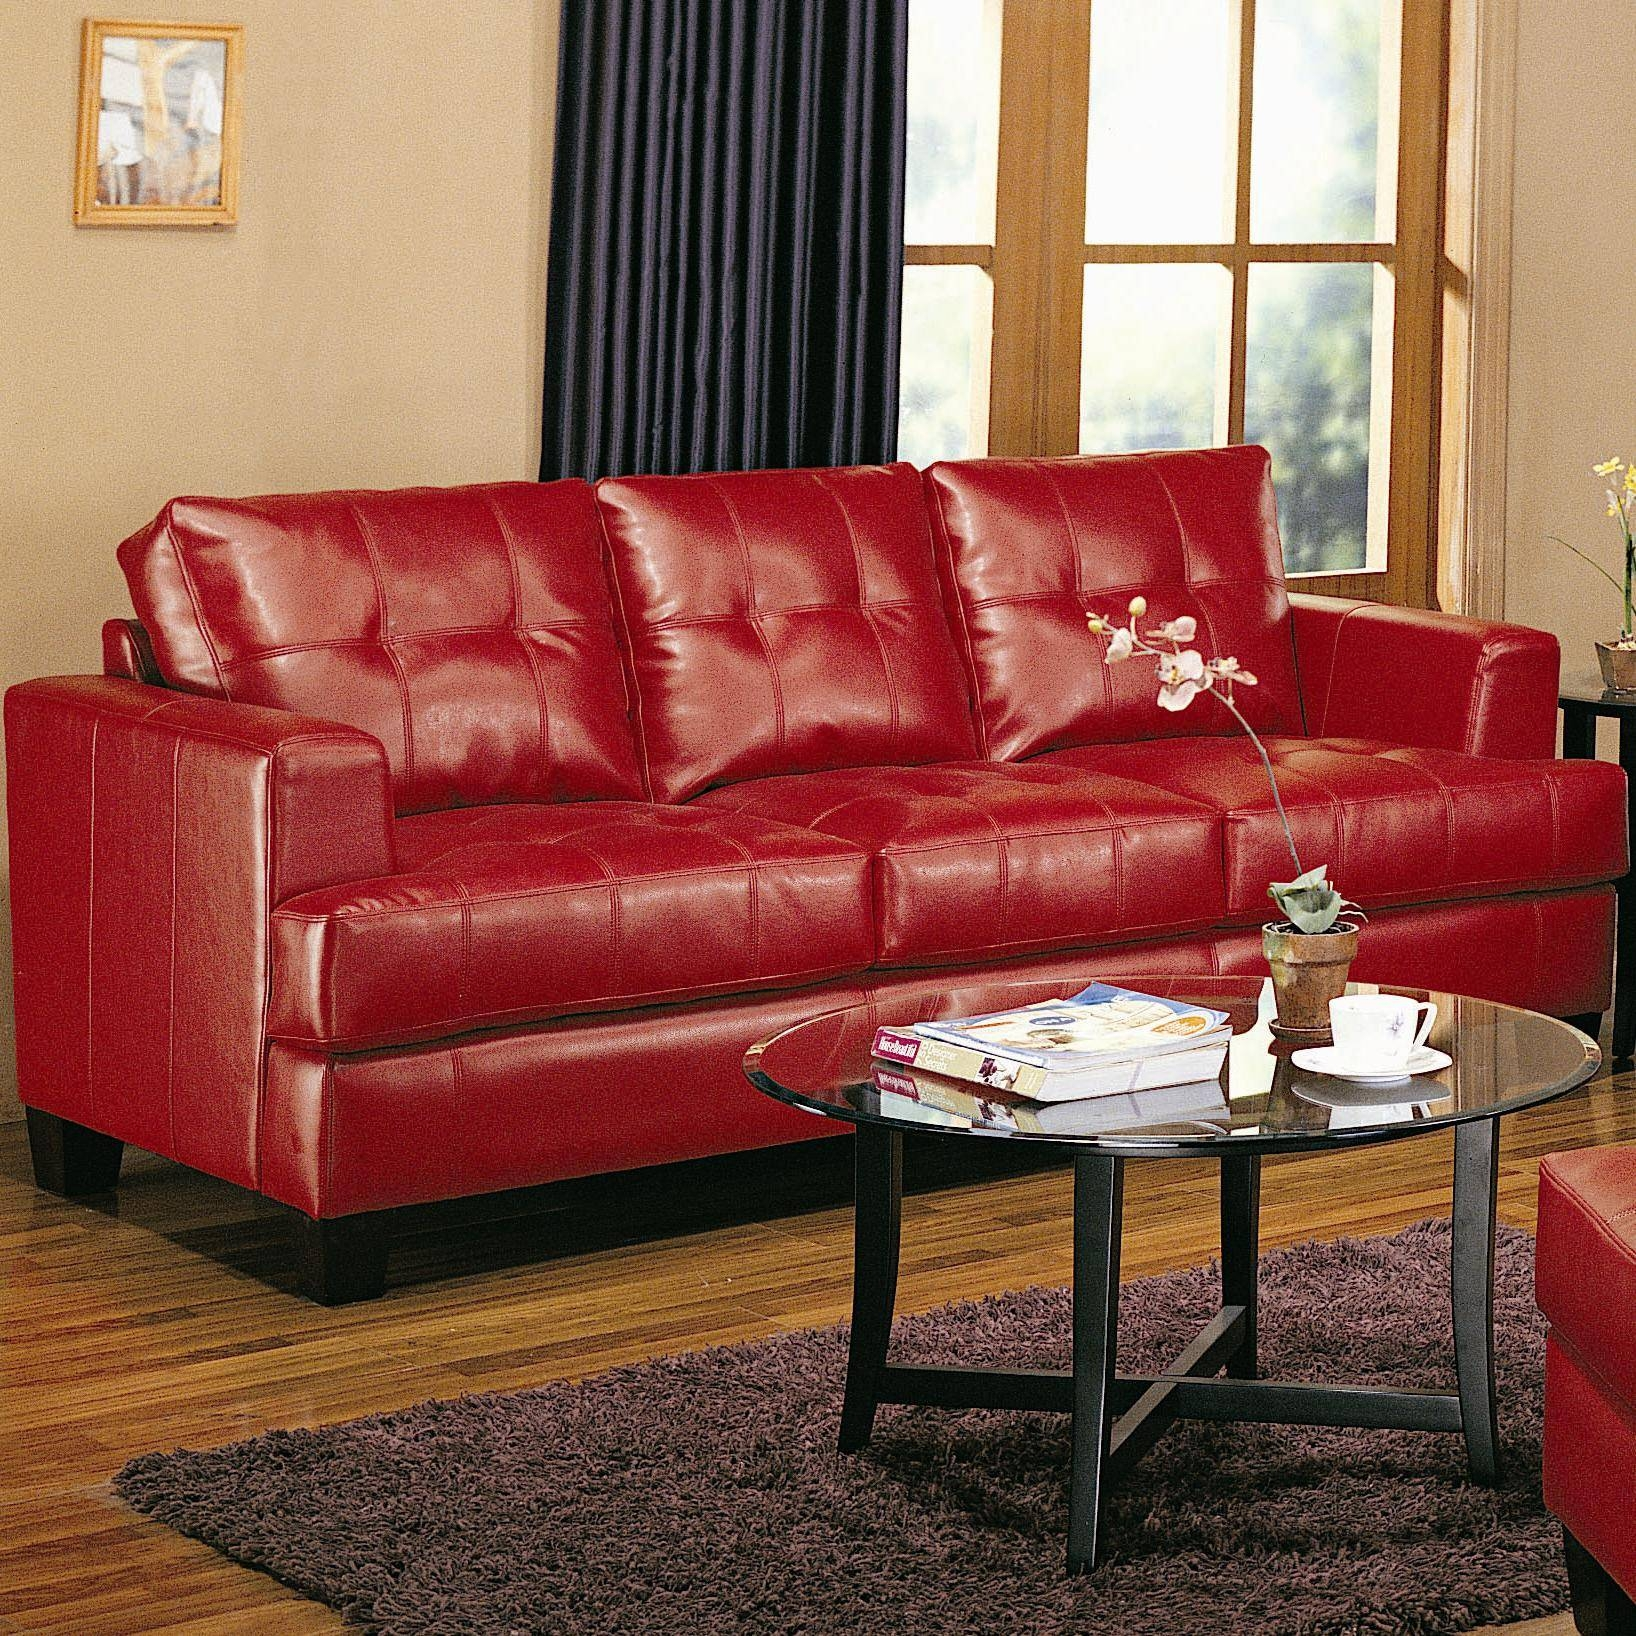 Furniture: Excellent Red Leather Sofaashley Furniture Austin regarding Dark Red Leather Sofas (Image 6 of 15)